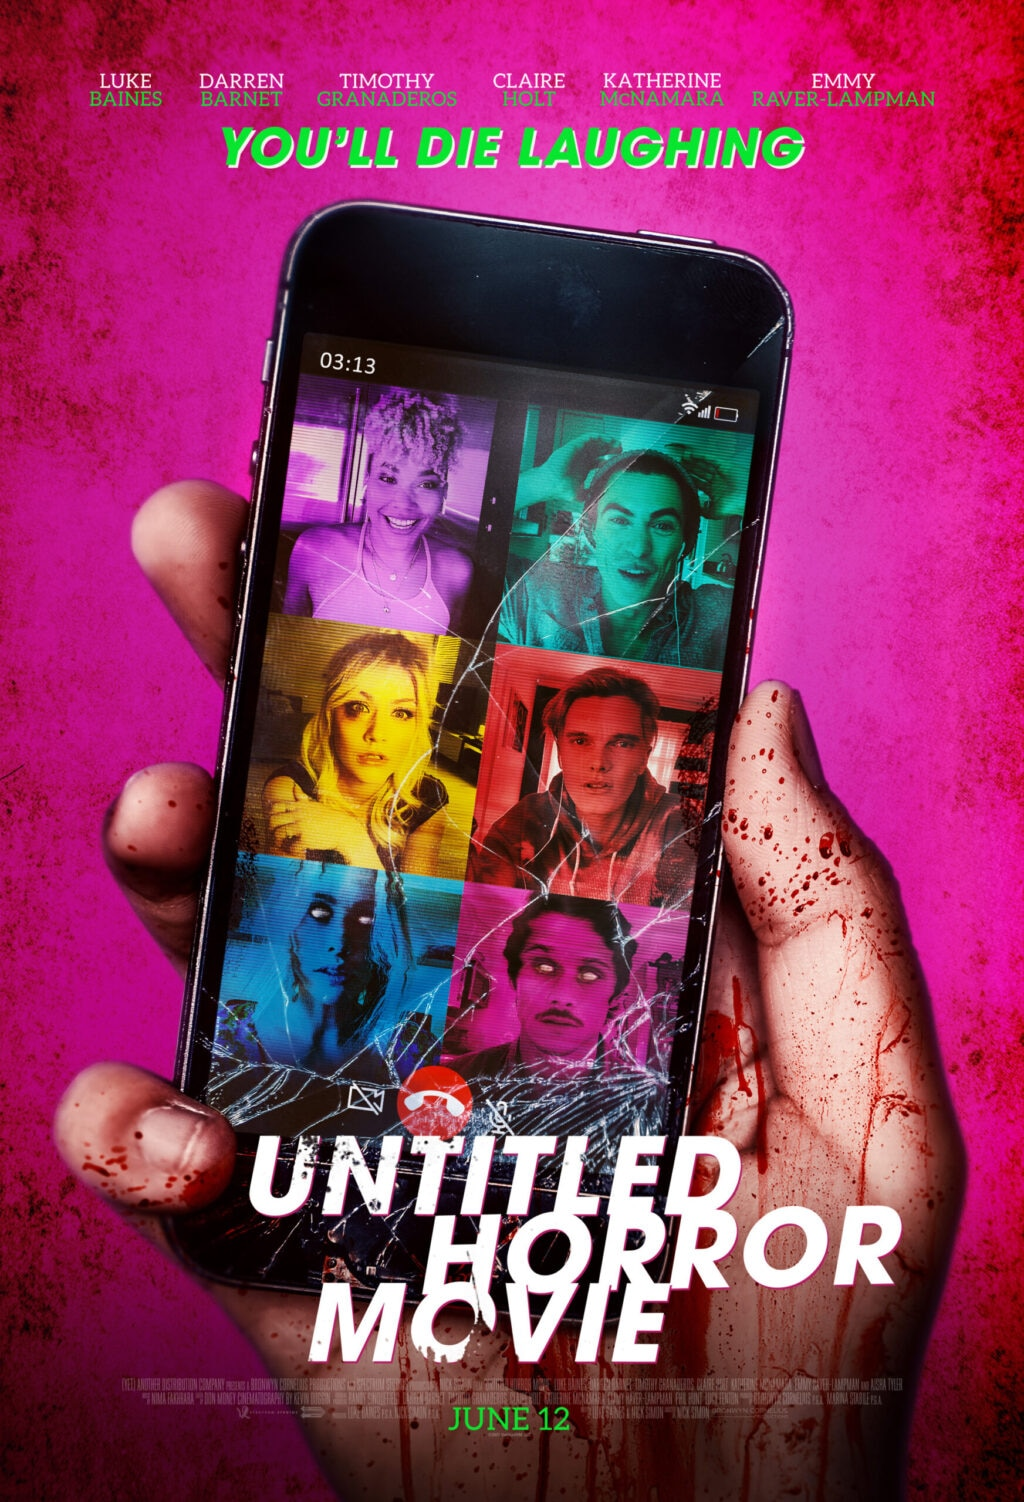 Poster Untitled Horror Movie Final 1024x1502 - Nothing Makes Sense in Trailer for New Meta-Comedy UNTITLED HORROR MOVIE